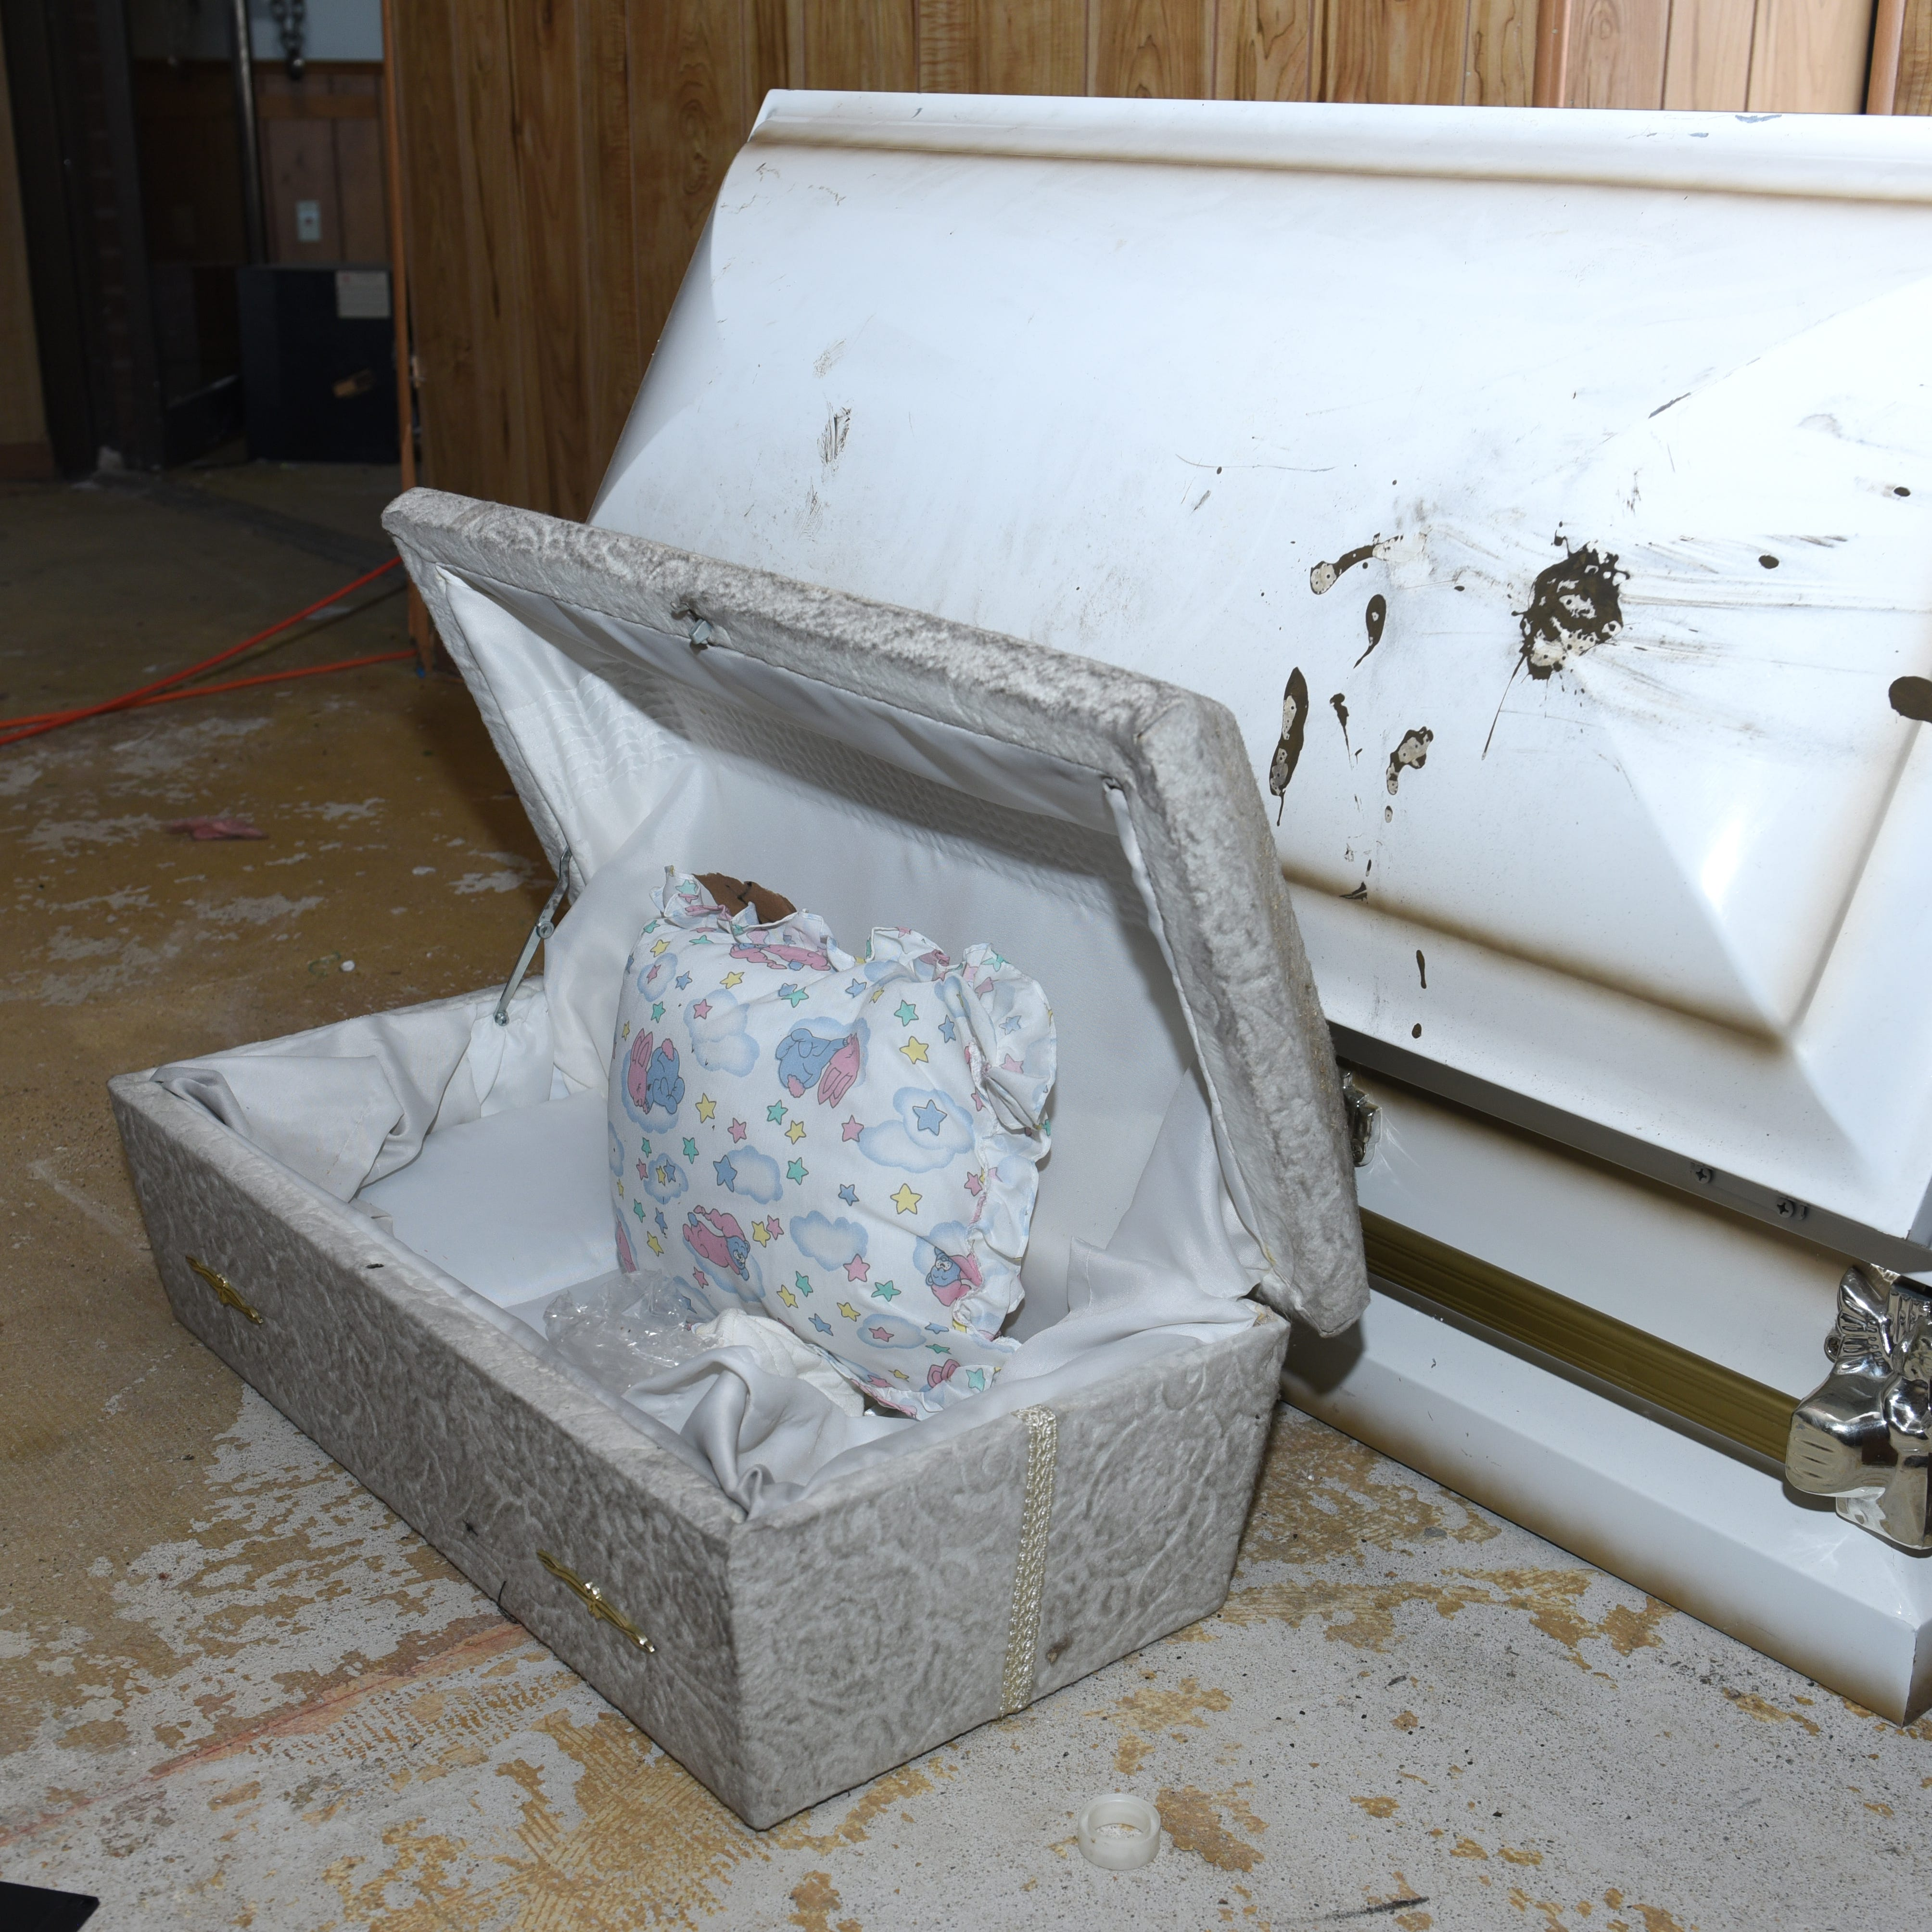 Official: Identifying infant remains could take months